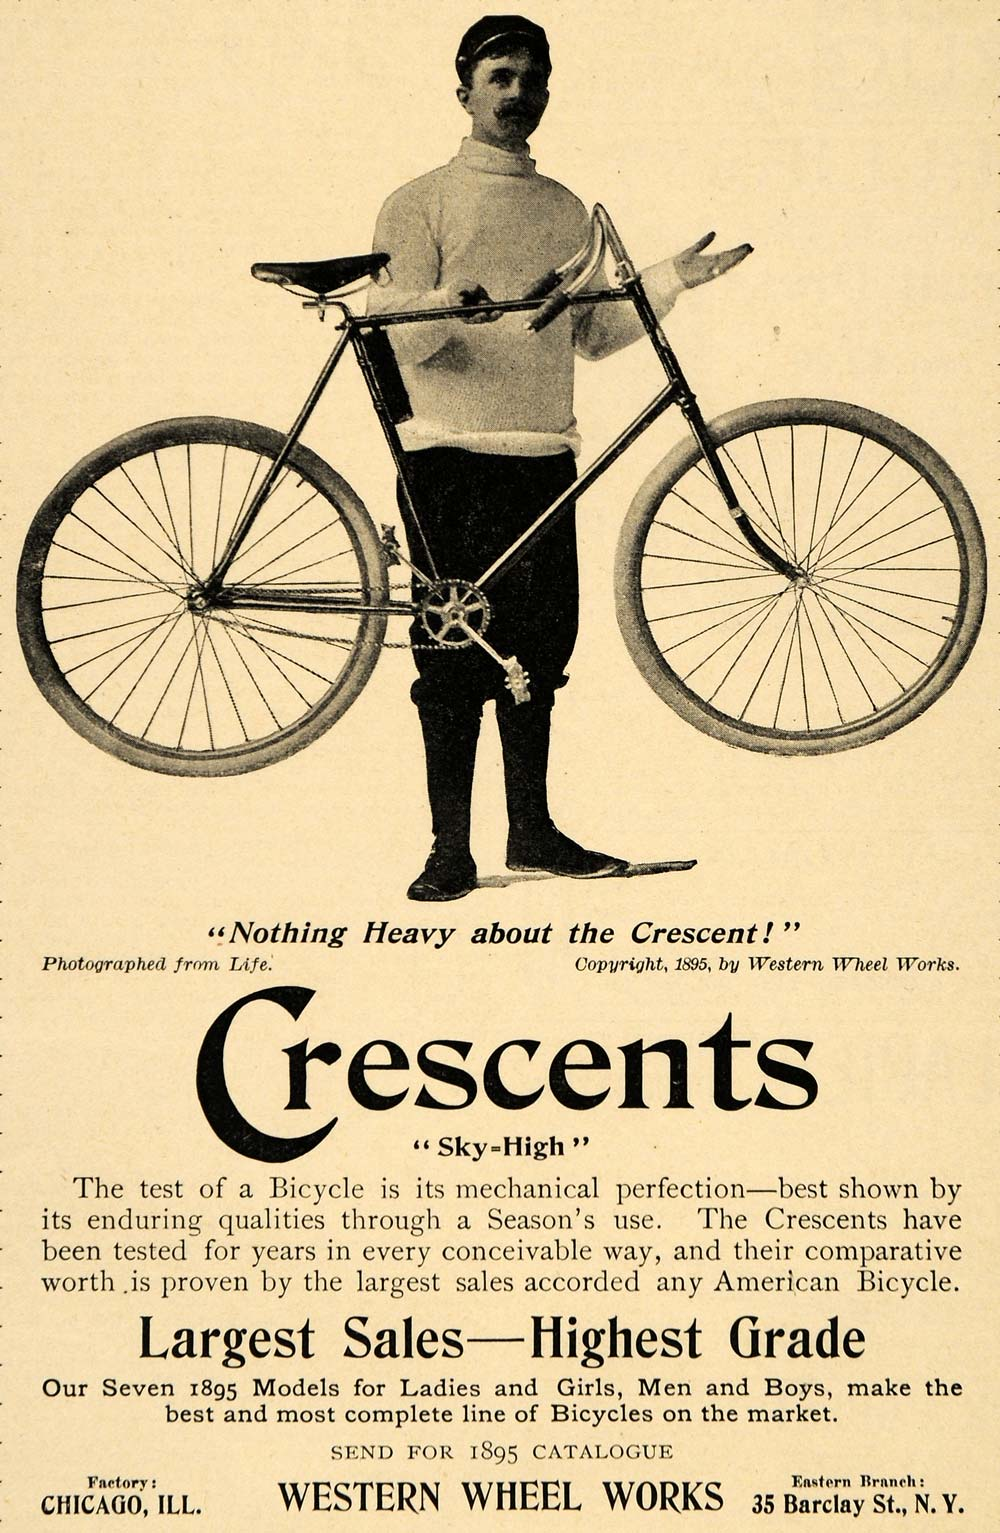 1895 Ad Western Wheel Works Crescent Sky High Bicycle - ORIGINAL LHJ4